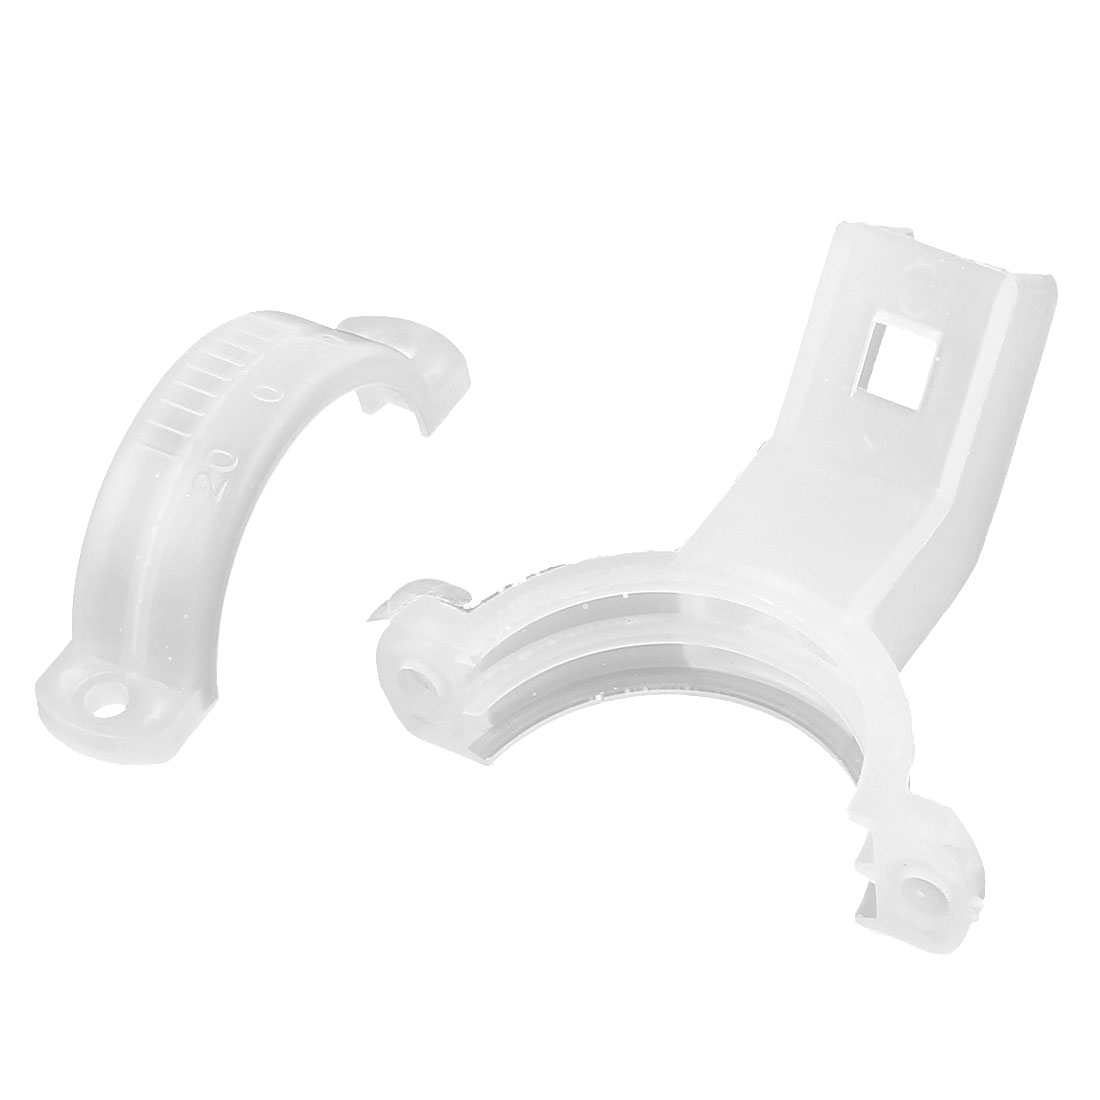 40mm Plastic Single Dish LNB Bracket Holder Mount for Ku Band